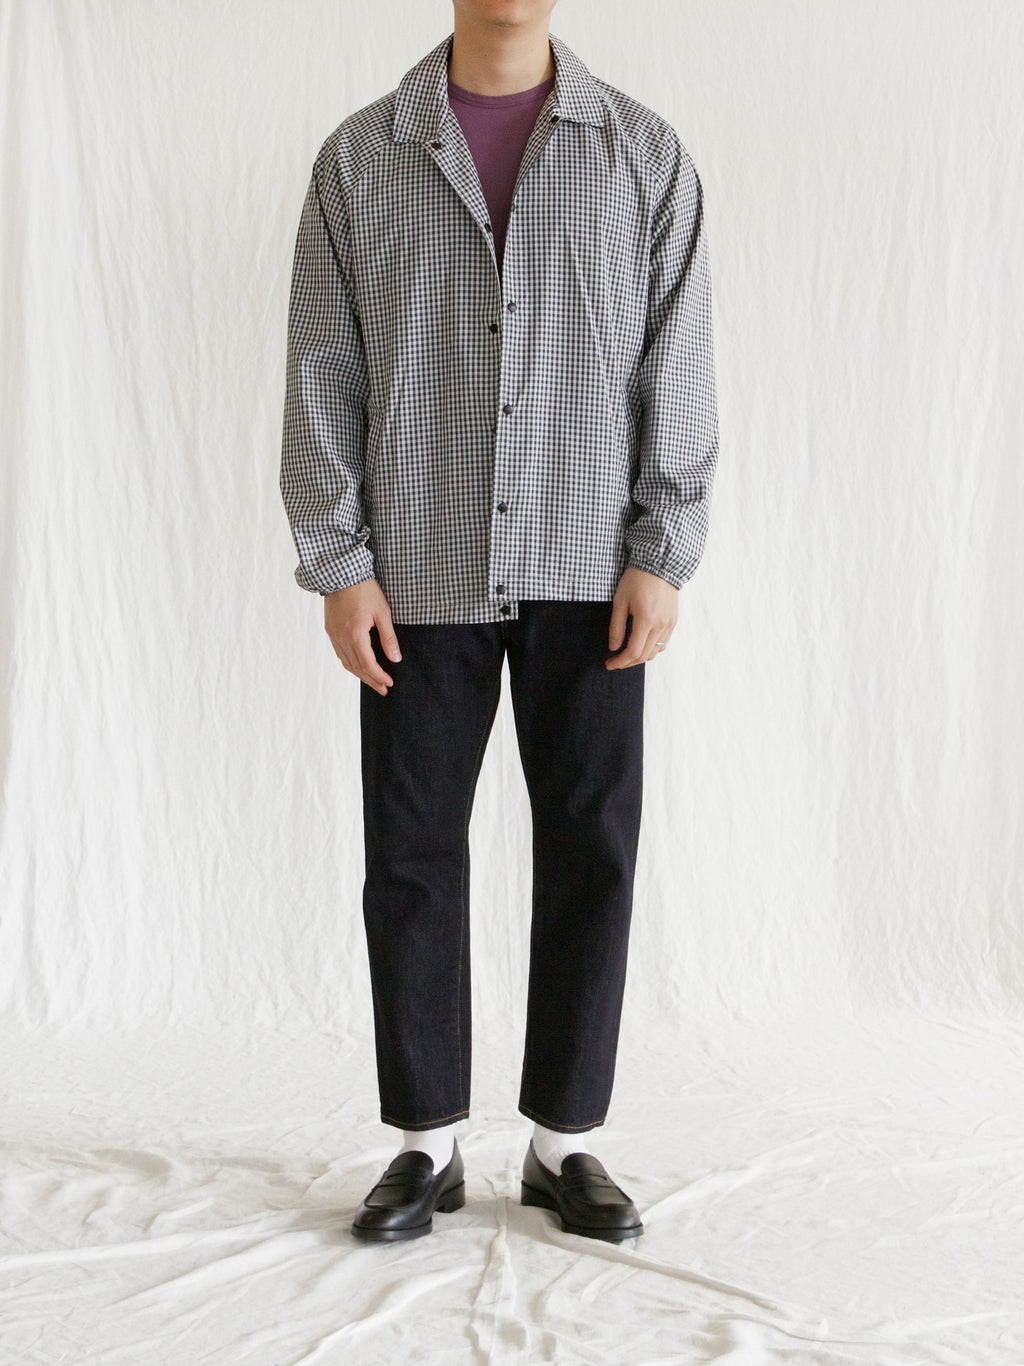 Namu Shop - paa Spectators Jacket - Charcoal Gingham